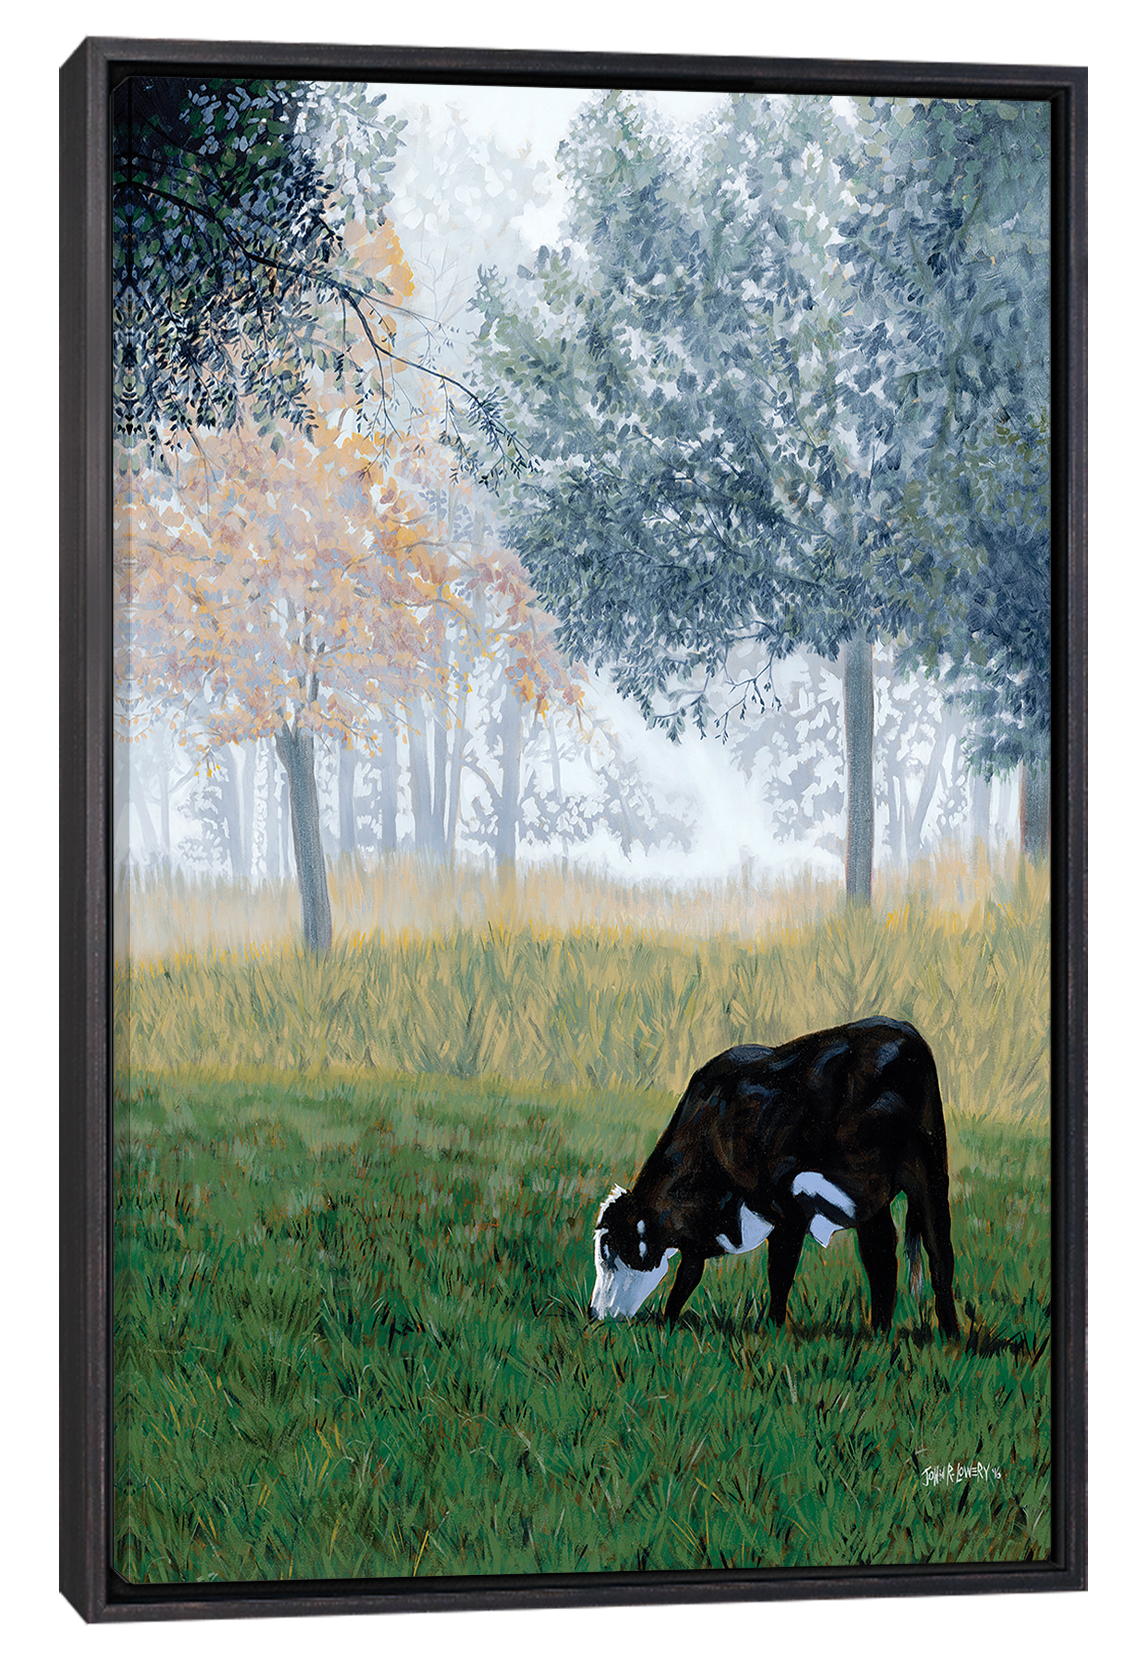 a cow grazing in grass that leads into a foggy wooded field